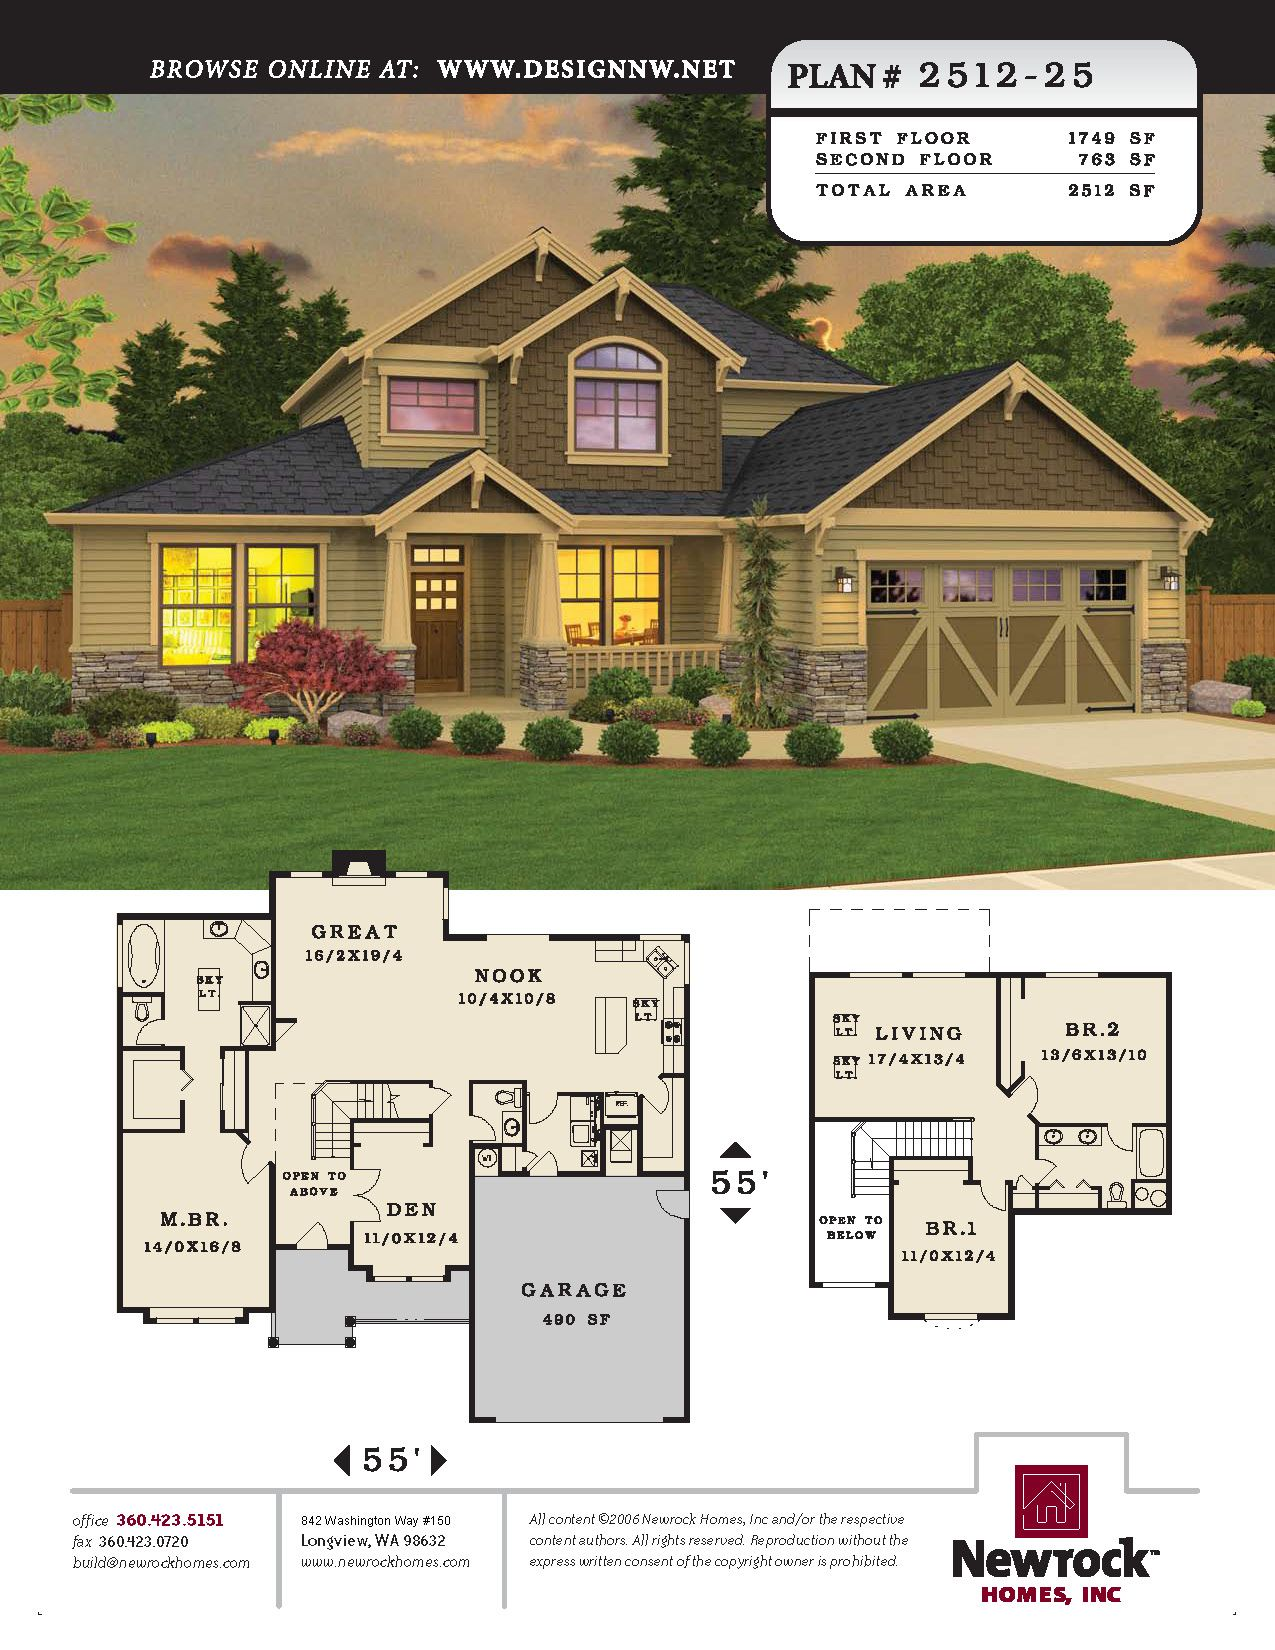 Newrock Homes Plan 2512 25 Newrock Homes House Blueprints Dream House Plans How To Plan